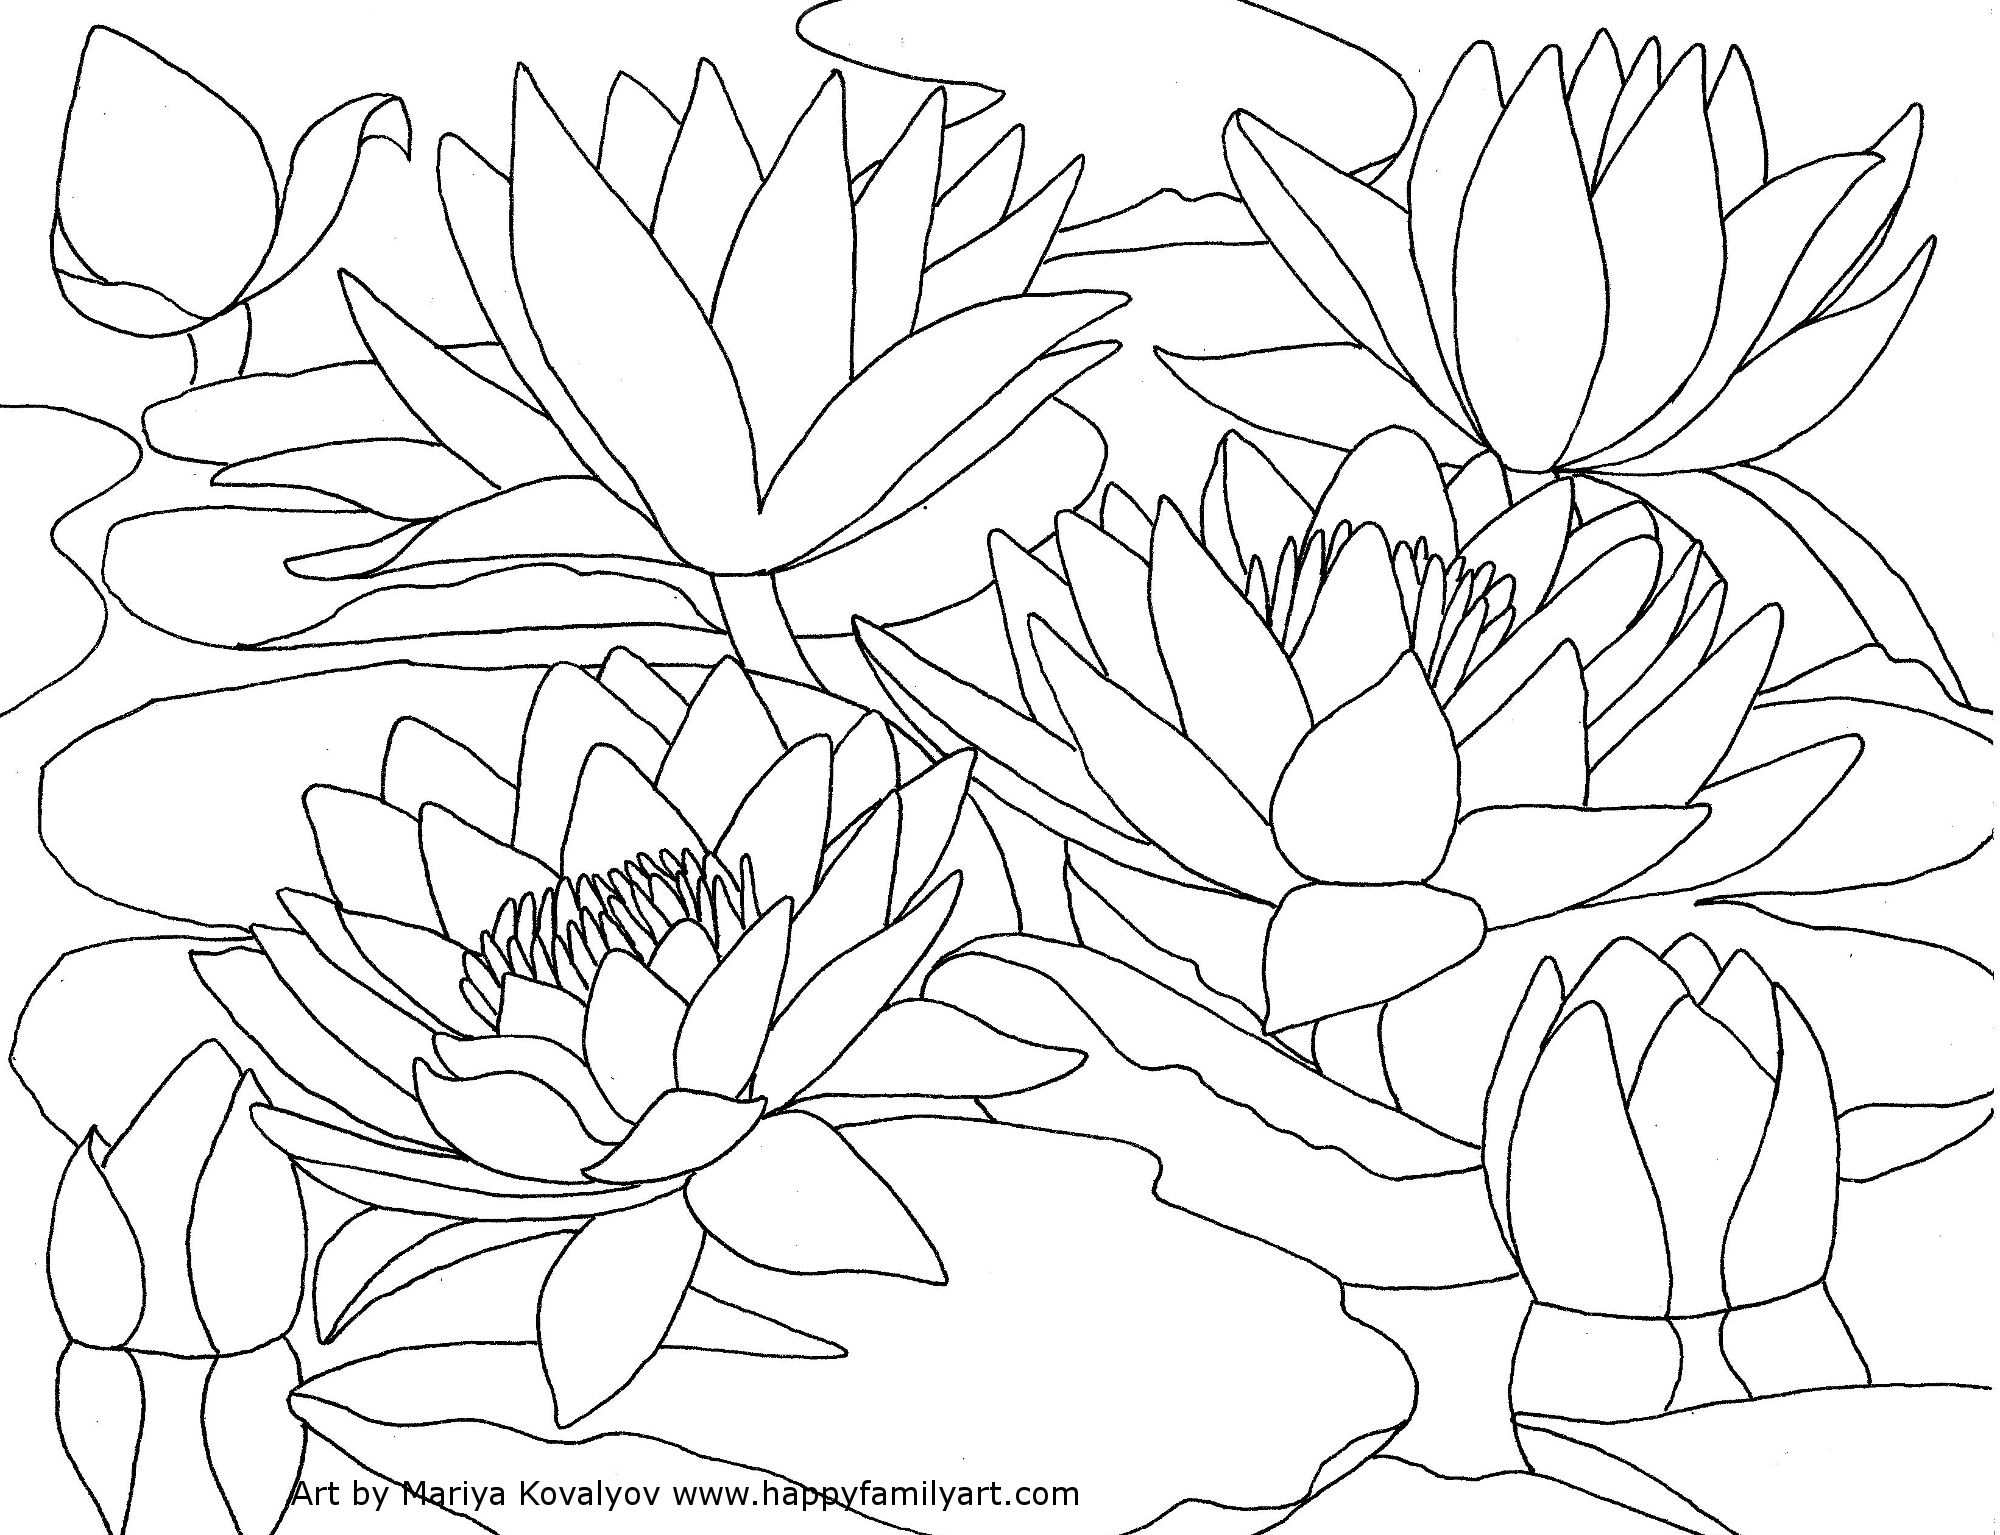 Happy Family Art Original And Fun Coloring Pages Flower Coloring Pages Lilies Drawing Water Lily Drawing